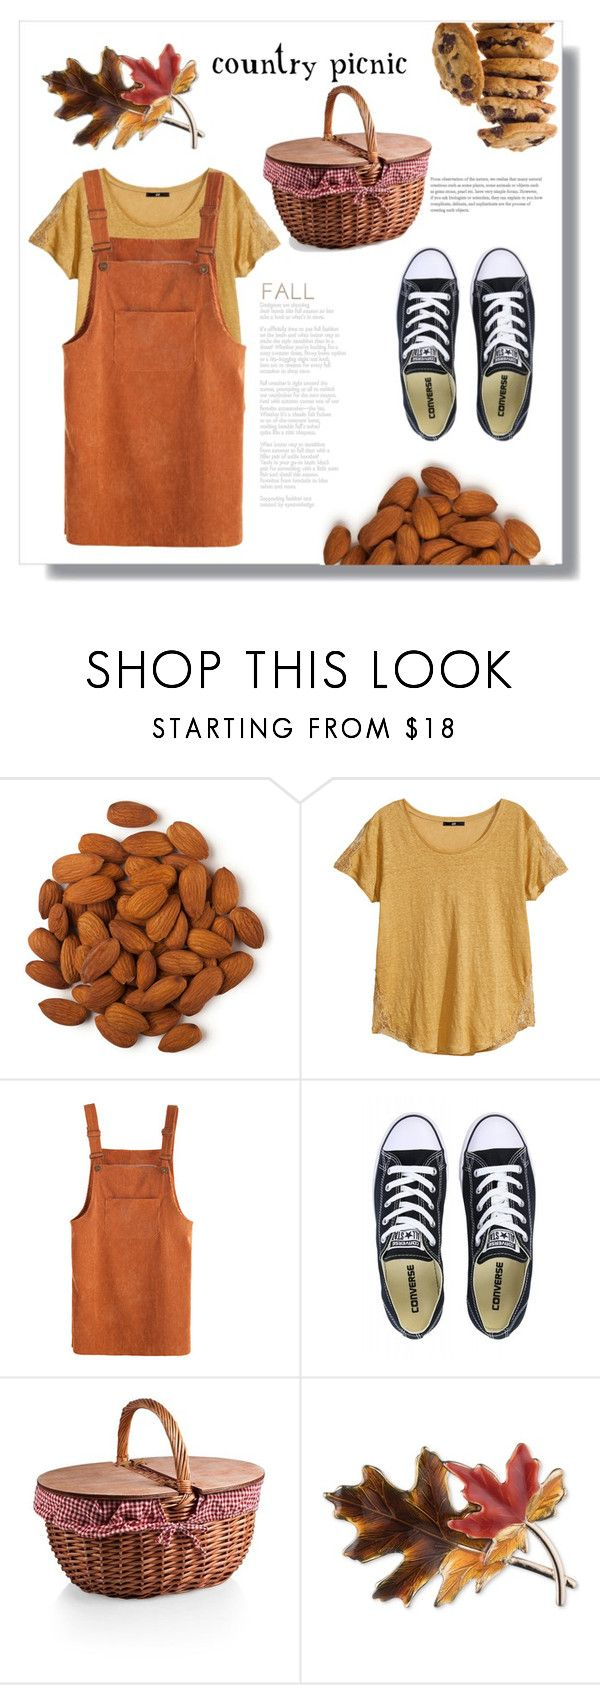 """Country picnic"" by ana-maria-0307 ❤ liked on Polyvore featuring H&M, Converse, Anne Klein and country"